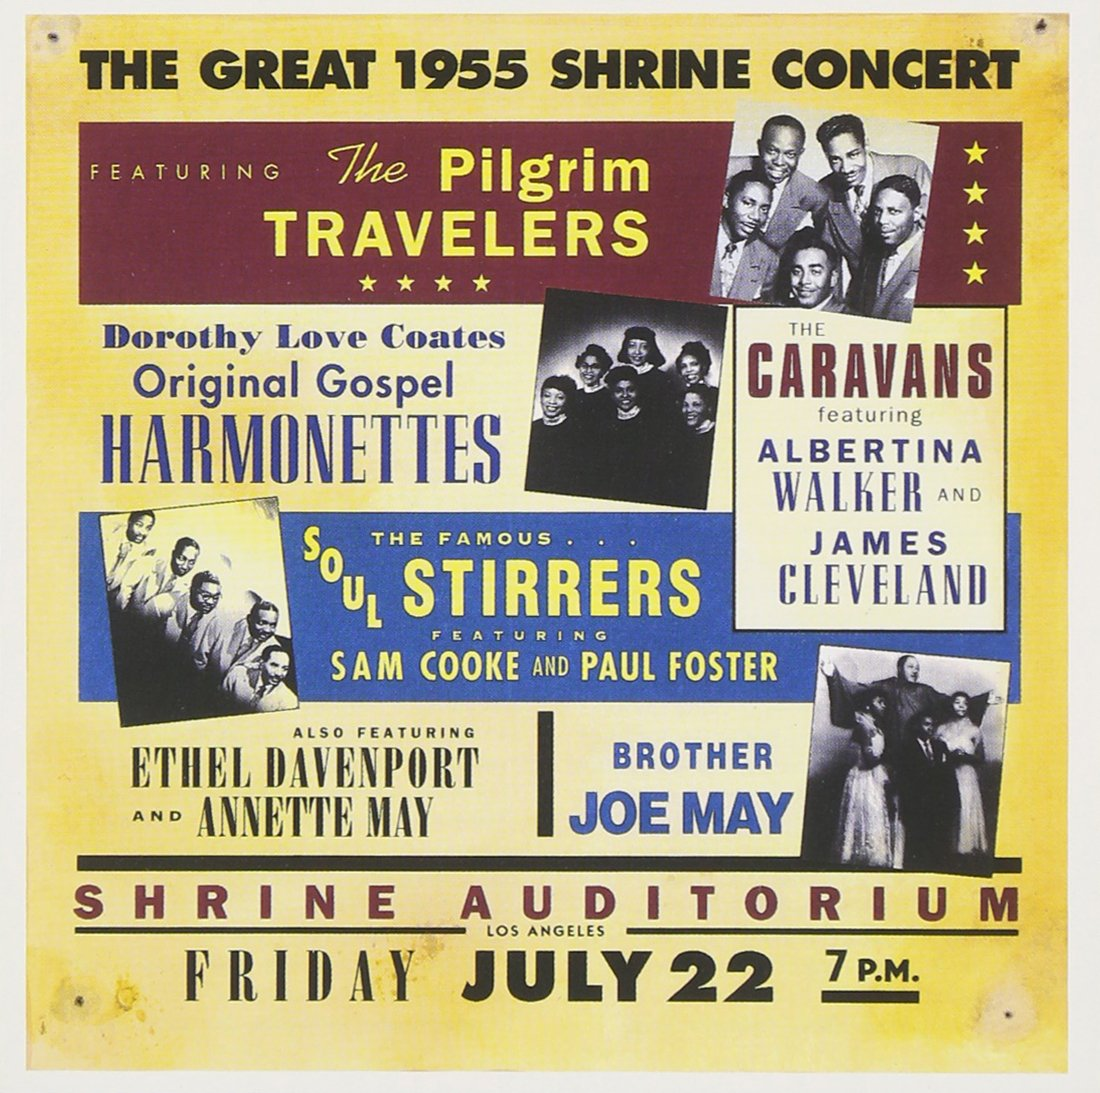 Great 1955 Shrine Concert